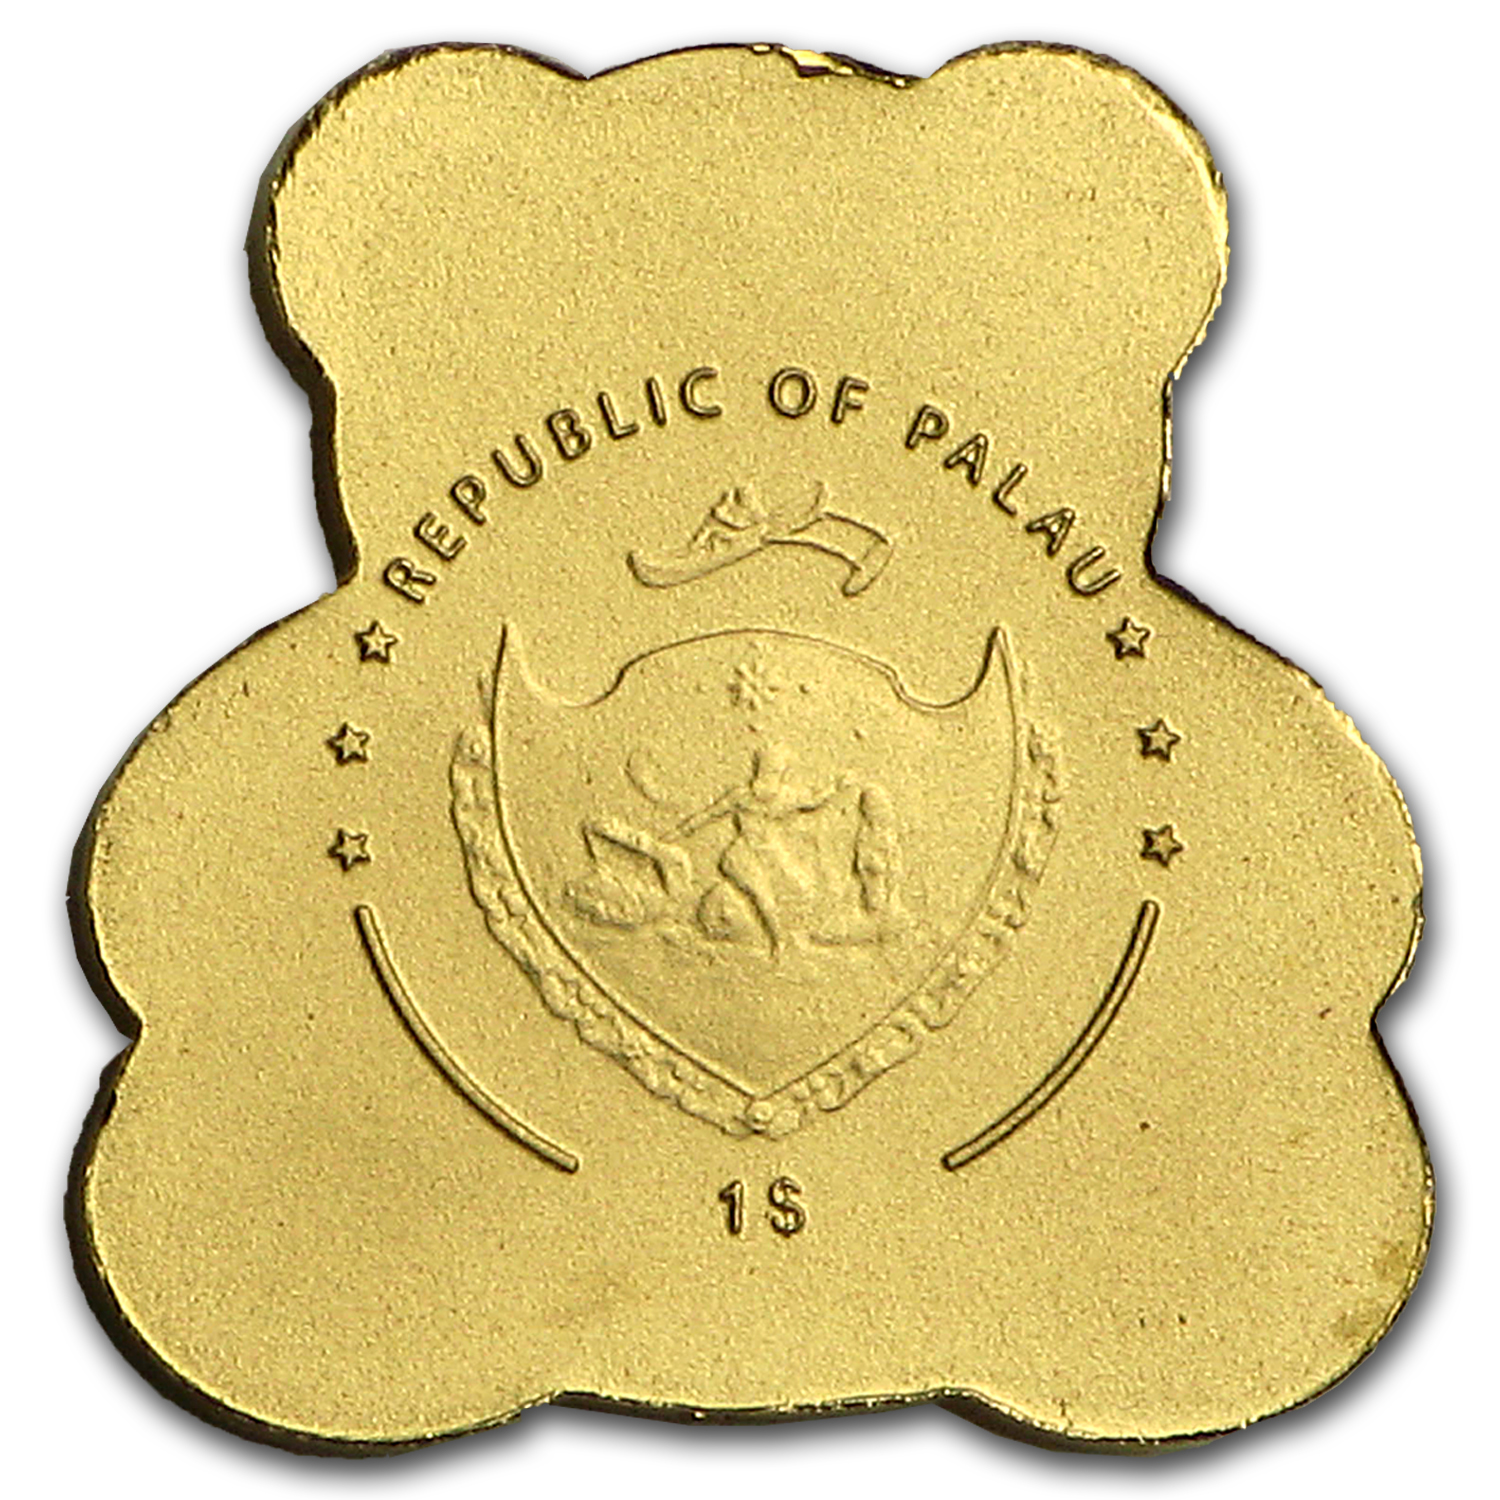 Palau 1/2 gram Gold $1 Teddy Bear